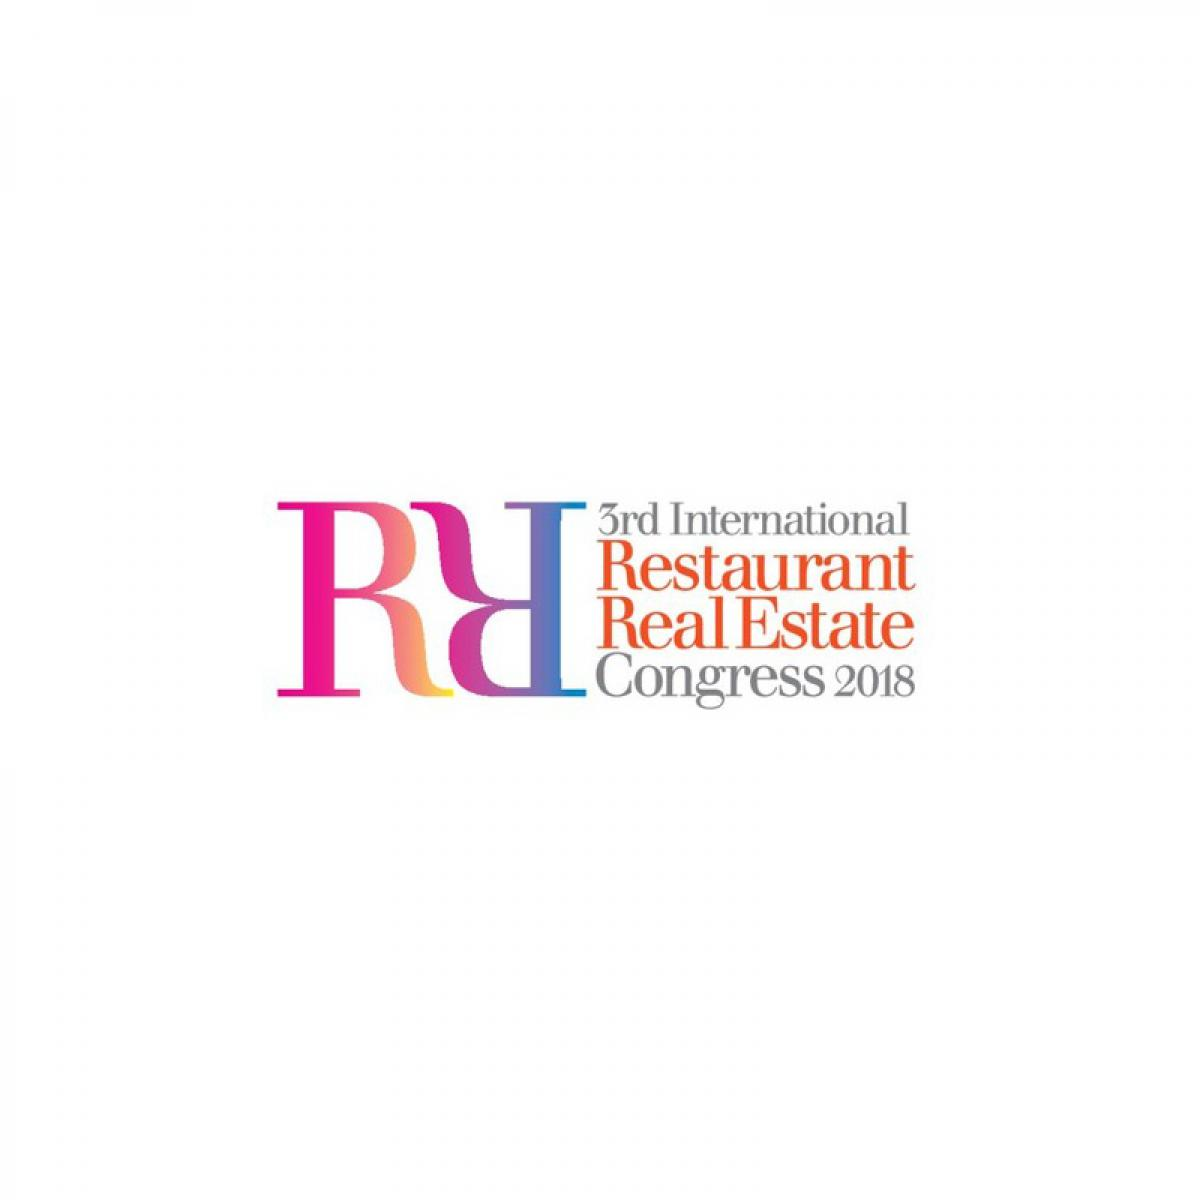 Colonia Nova - 3rd International Restaurant Real Estate Congress 2018